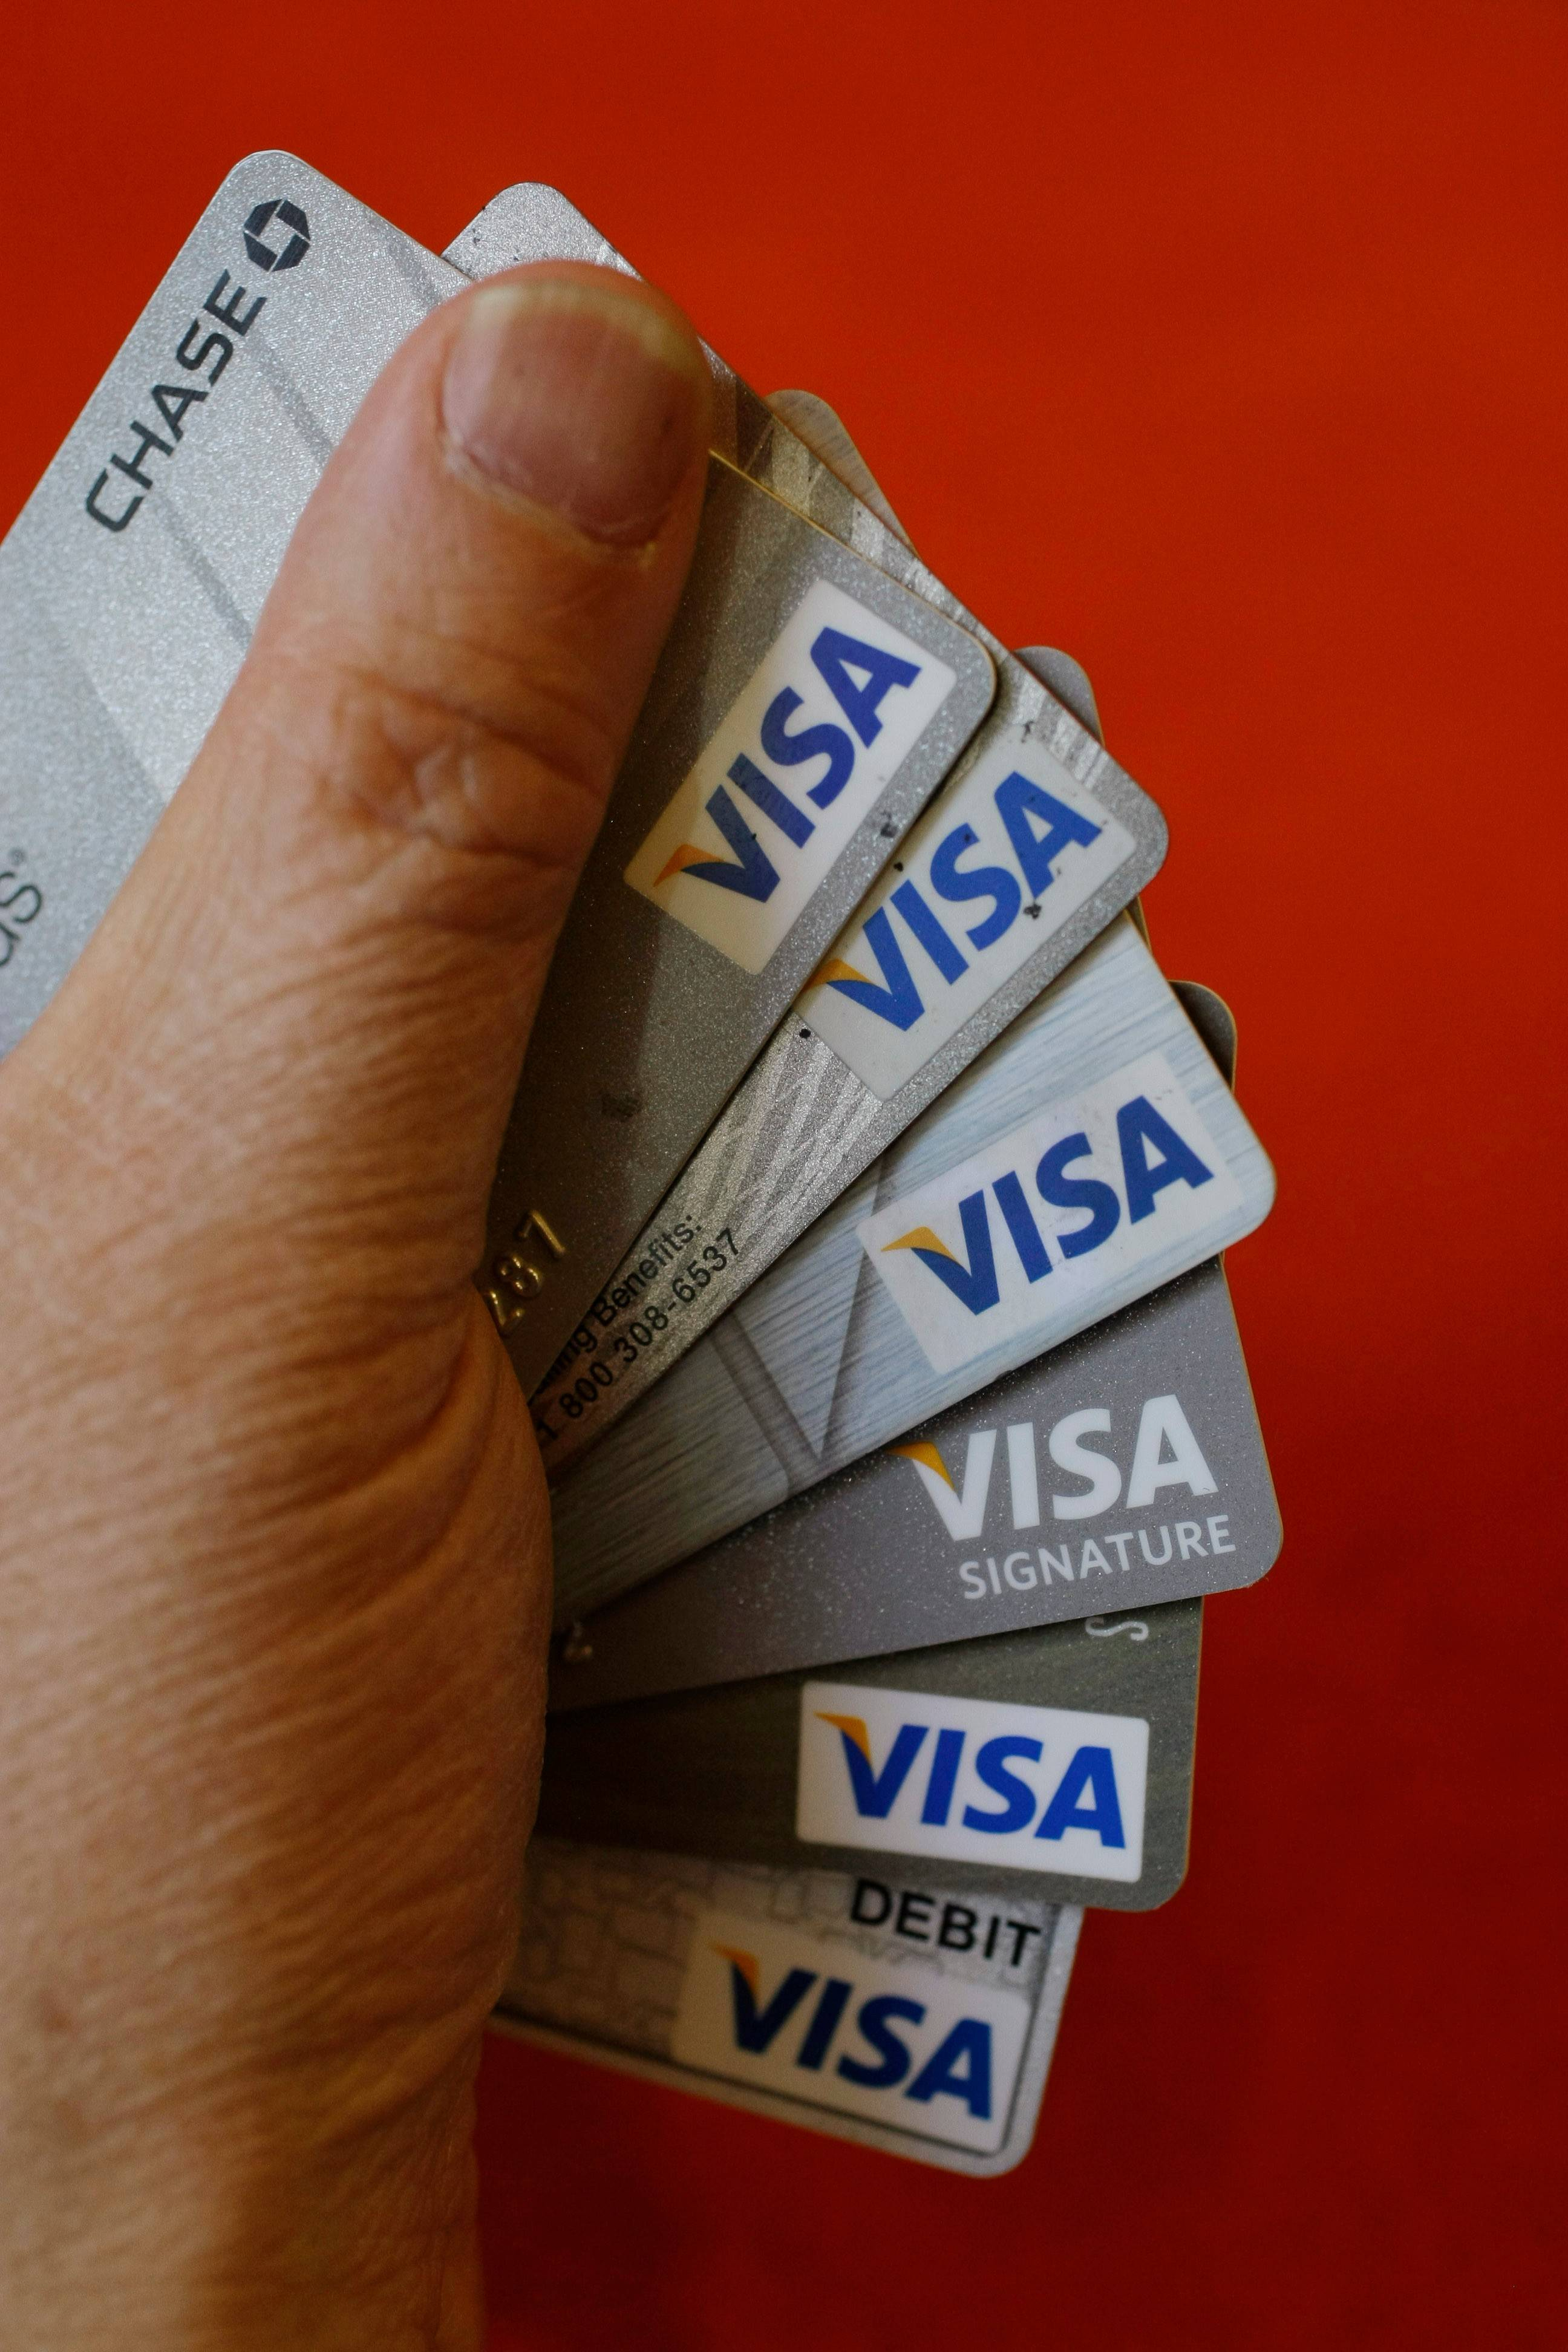 Visa said it will put labels on packages of cards that meet a new set of standards it unveiled Tuesday.